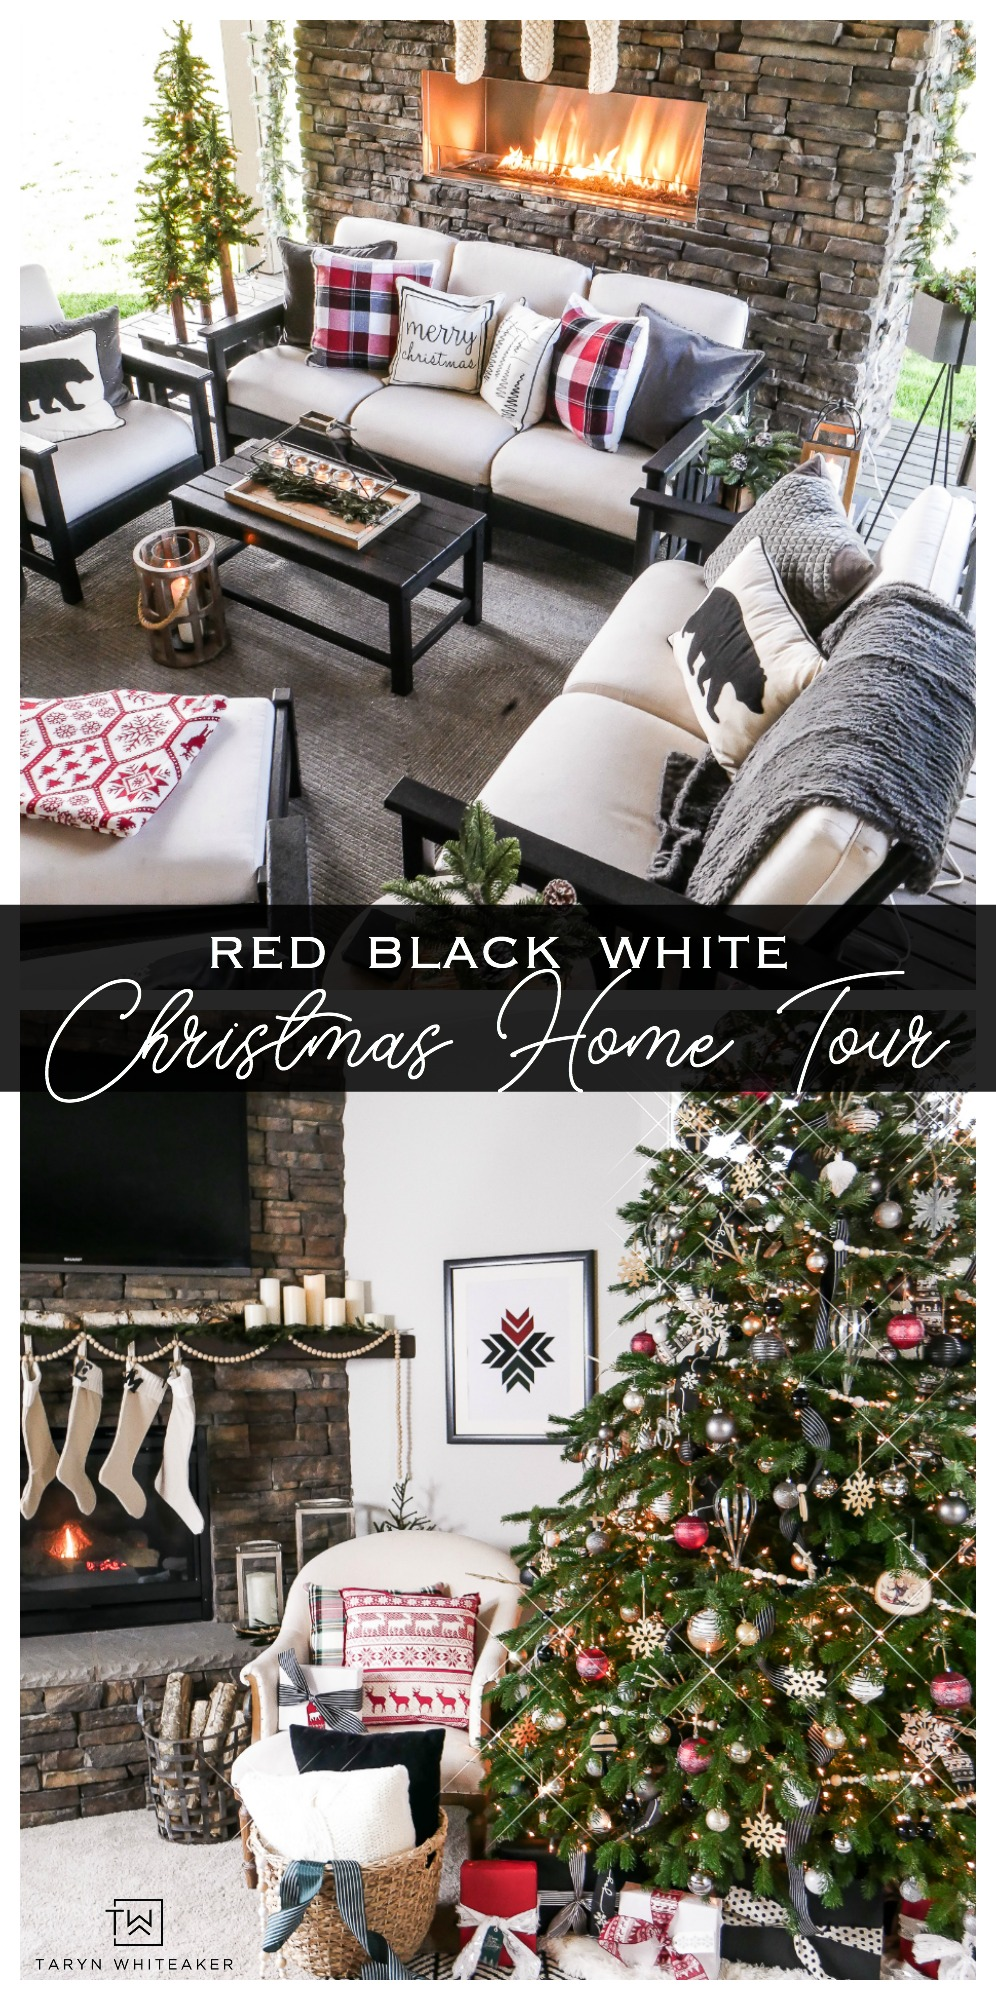 Take a tour of this Rustic Modern home for the holidays! See how she used red, black and white with lots of greenery to decorate for Christmas!